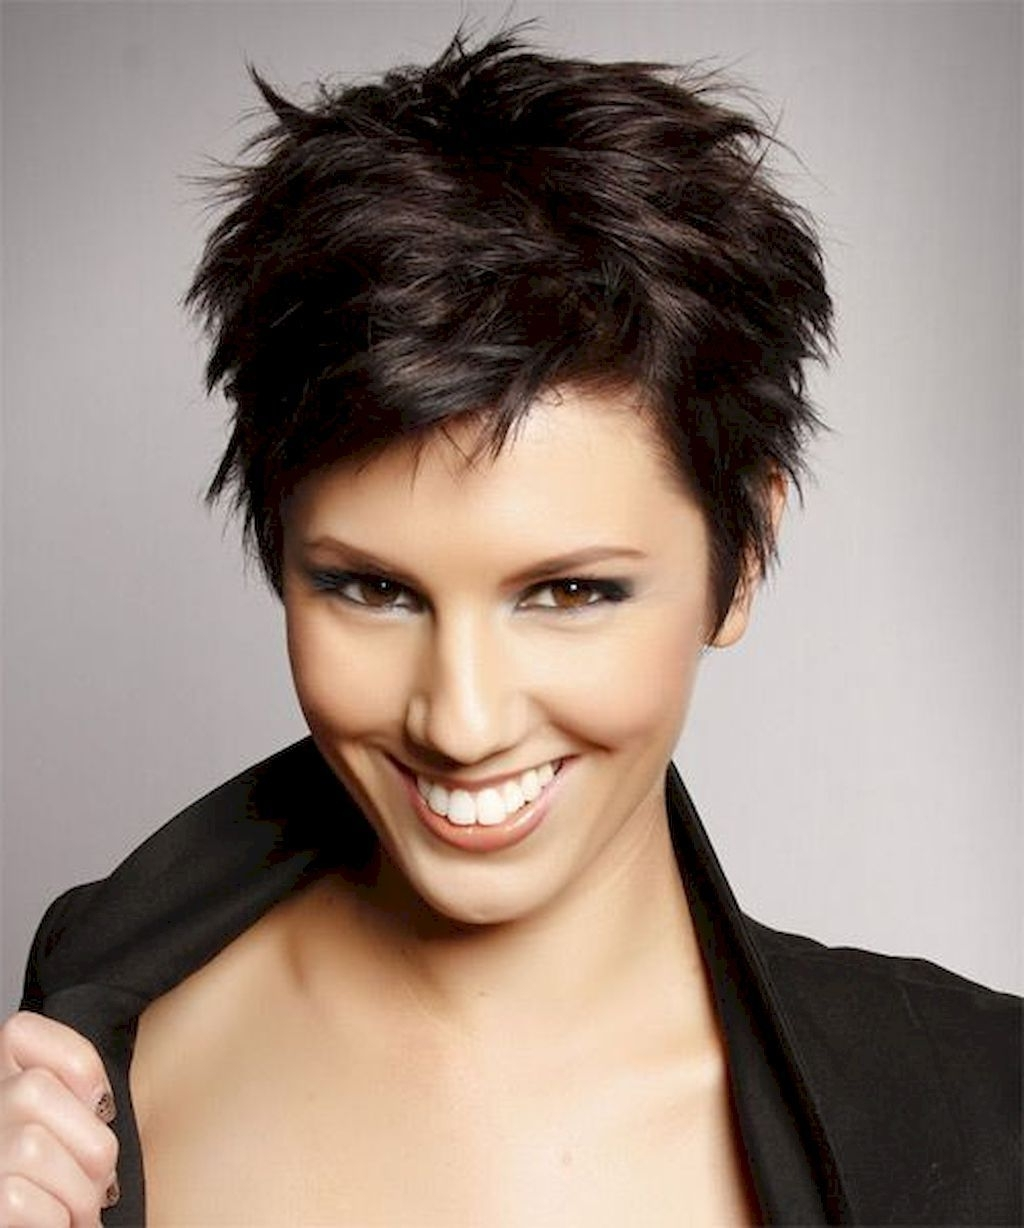 72 Classy Short Pixie Haircuts And Hairstyles For Thick Hair Pertaining To Best And Newest Pixie Hairstyles For Thick Coarse Hair (View 15 of 16)